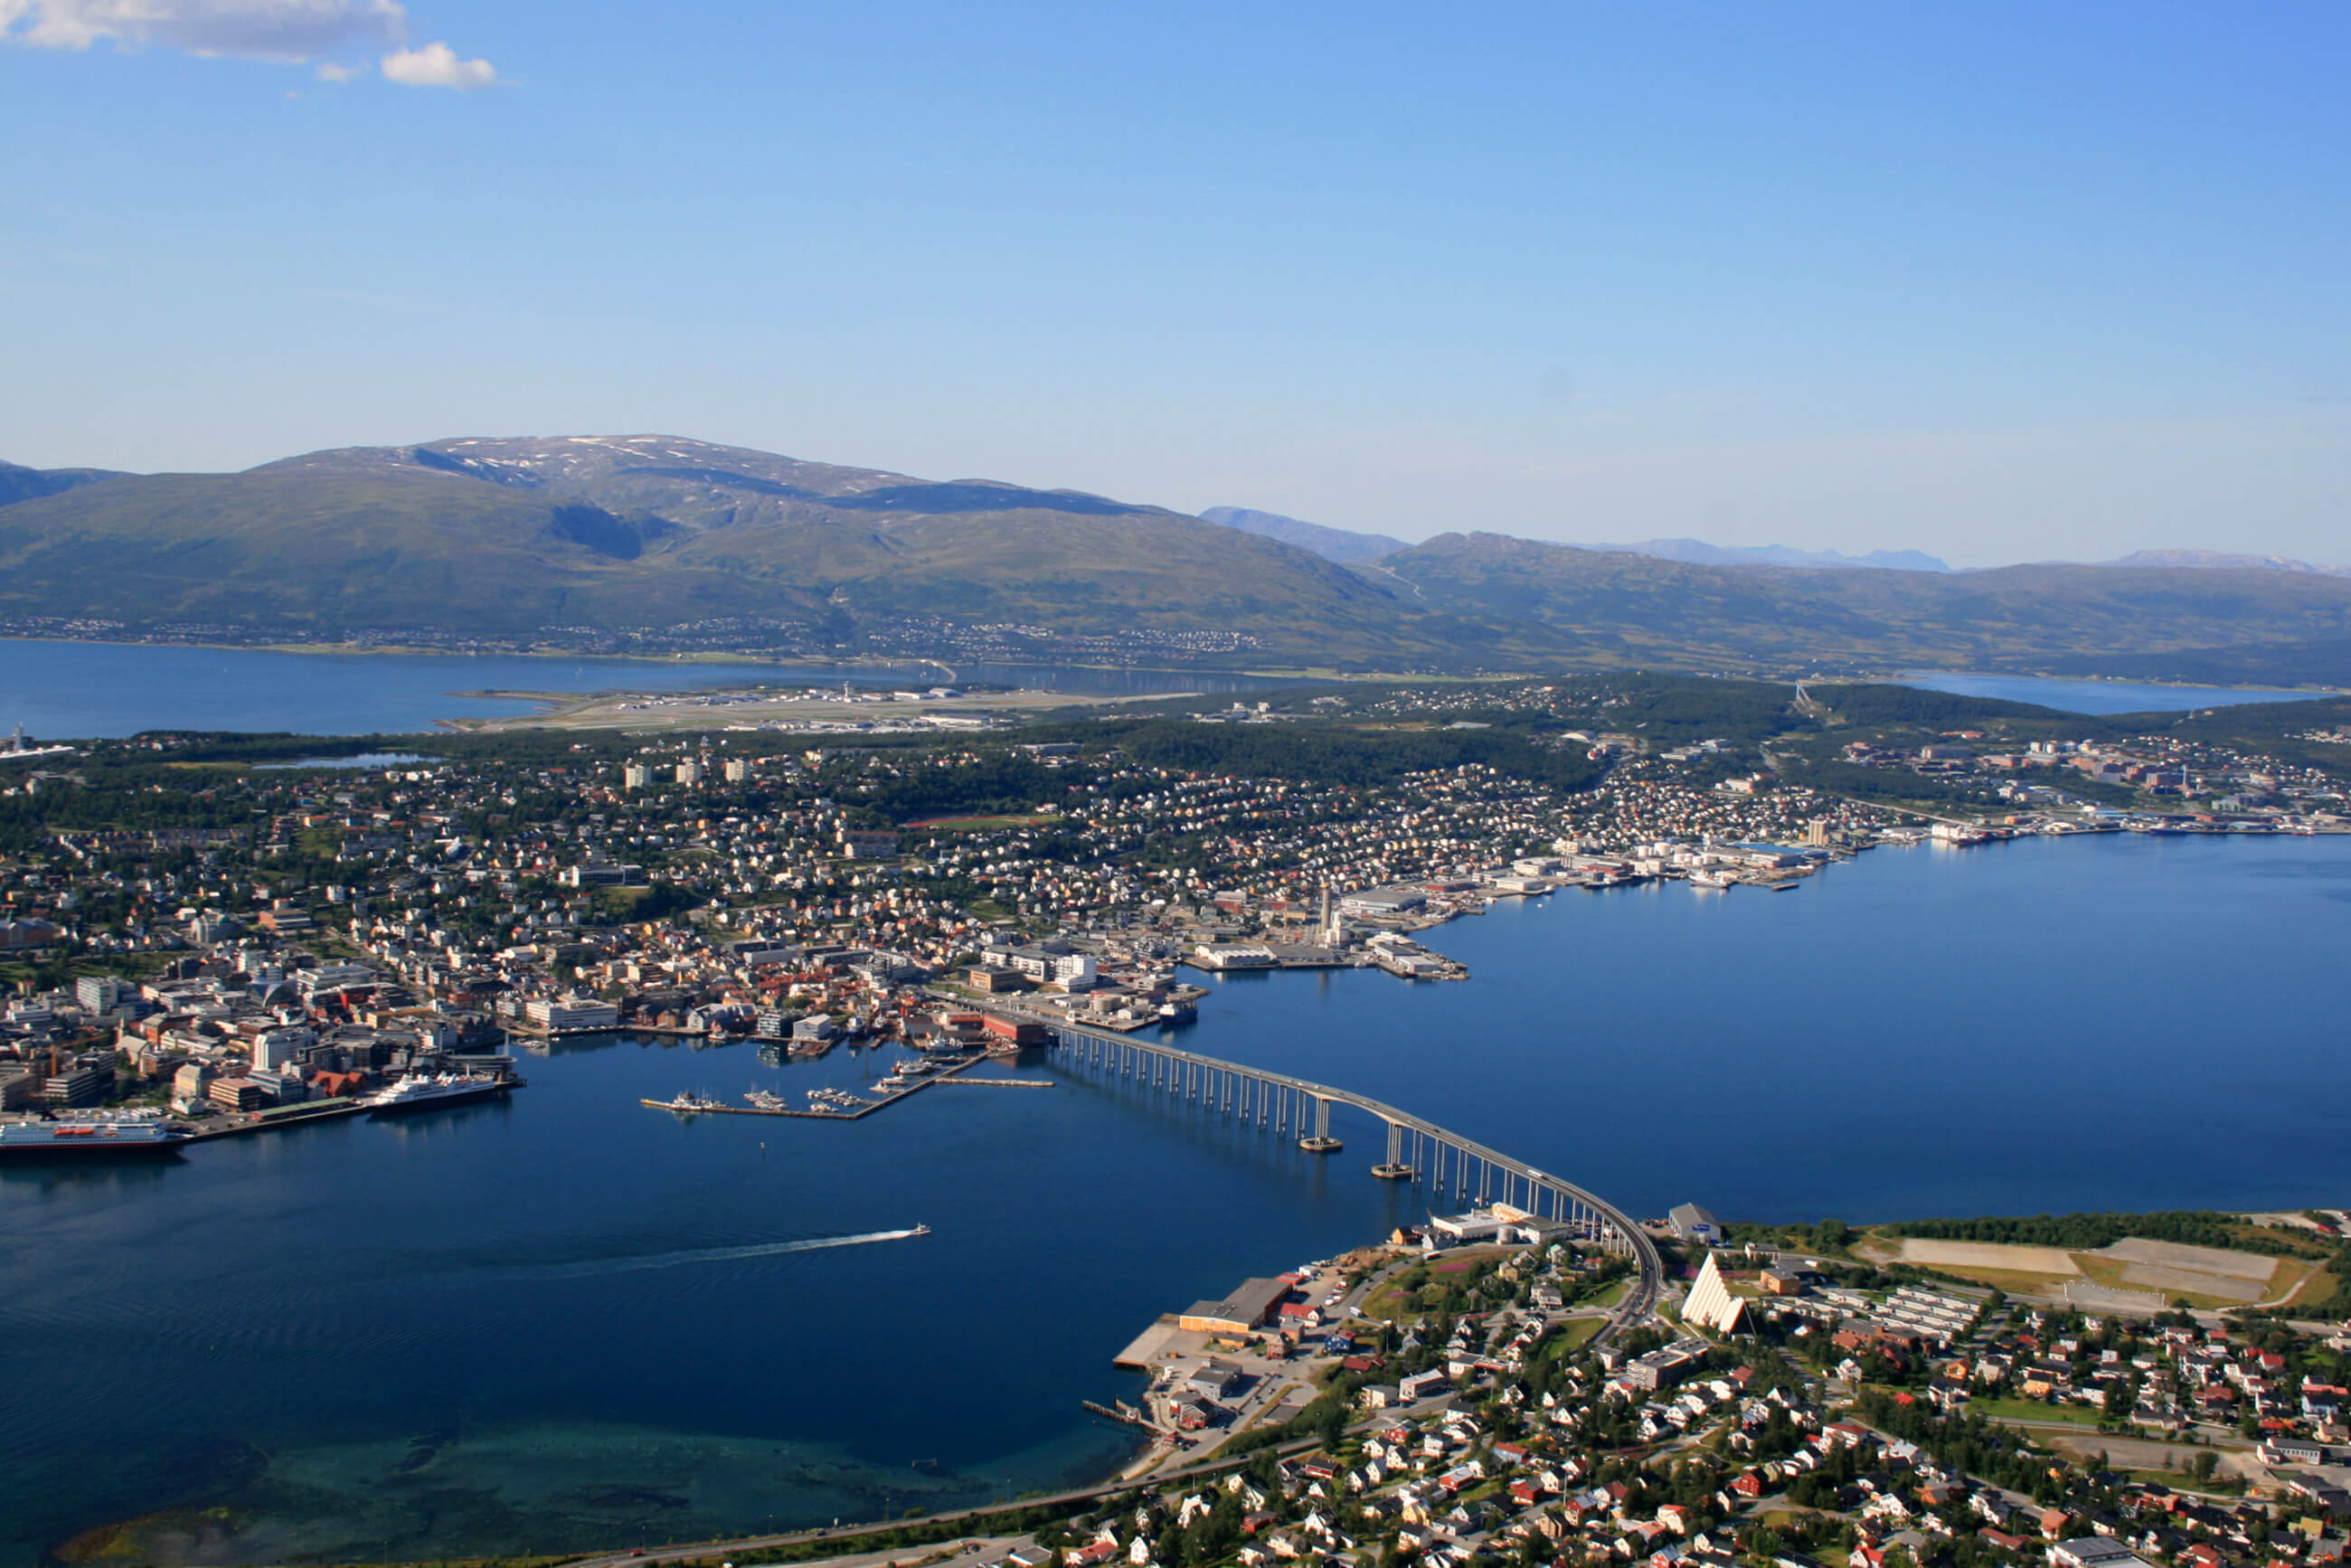 https://bubo.sk/uploads/galleries/5043/tromso-norway-hgr-111948--photo_photo_competition.jpg